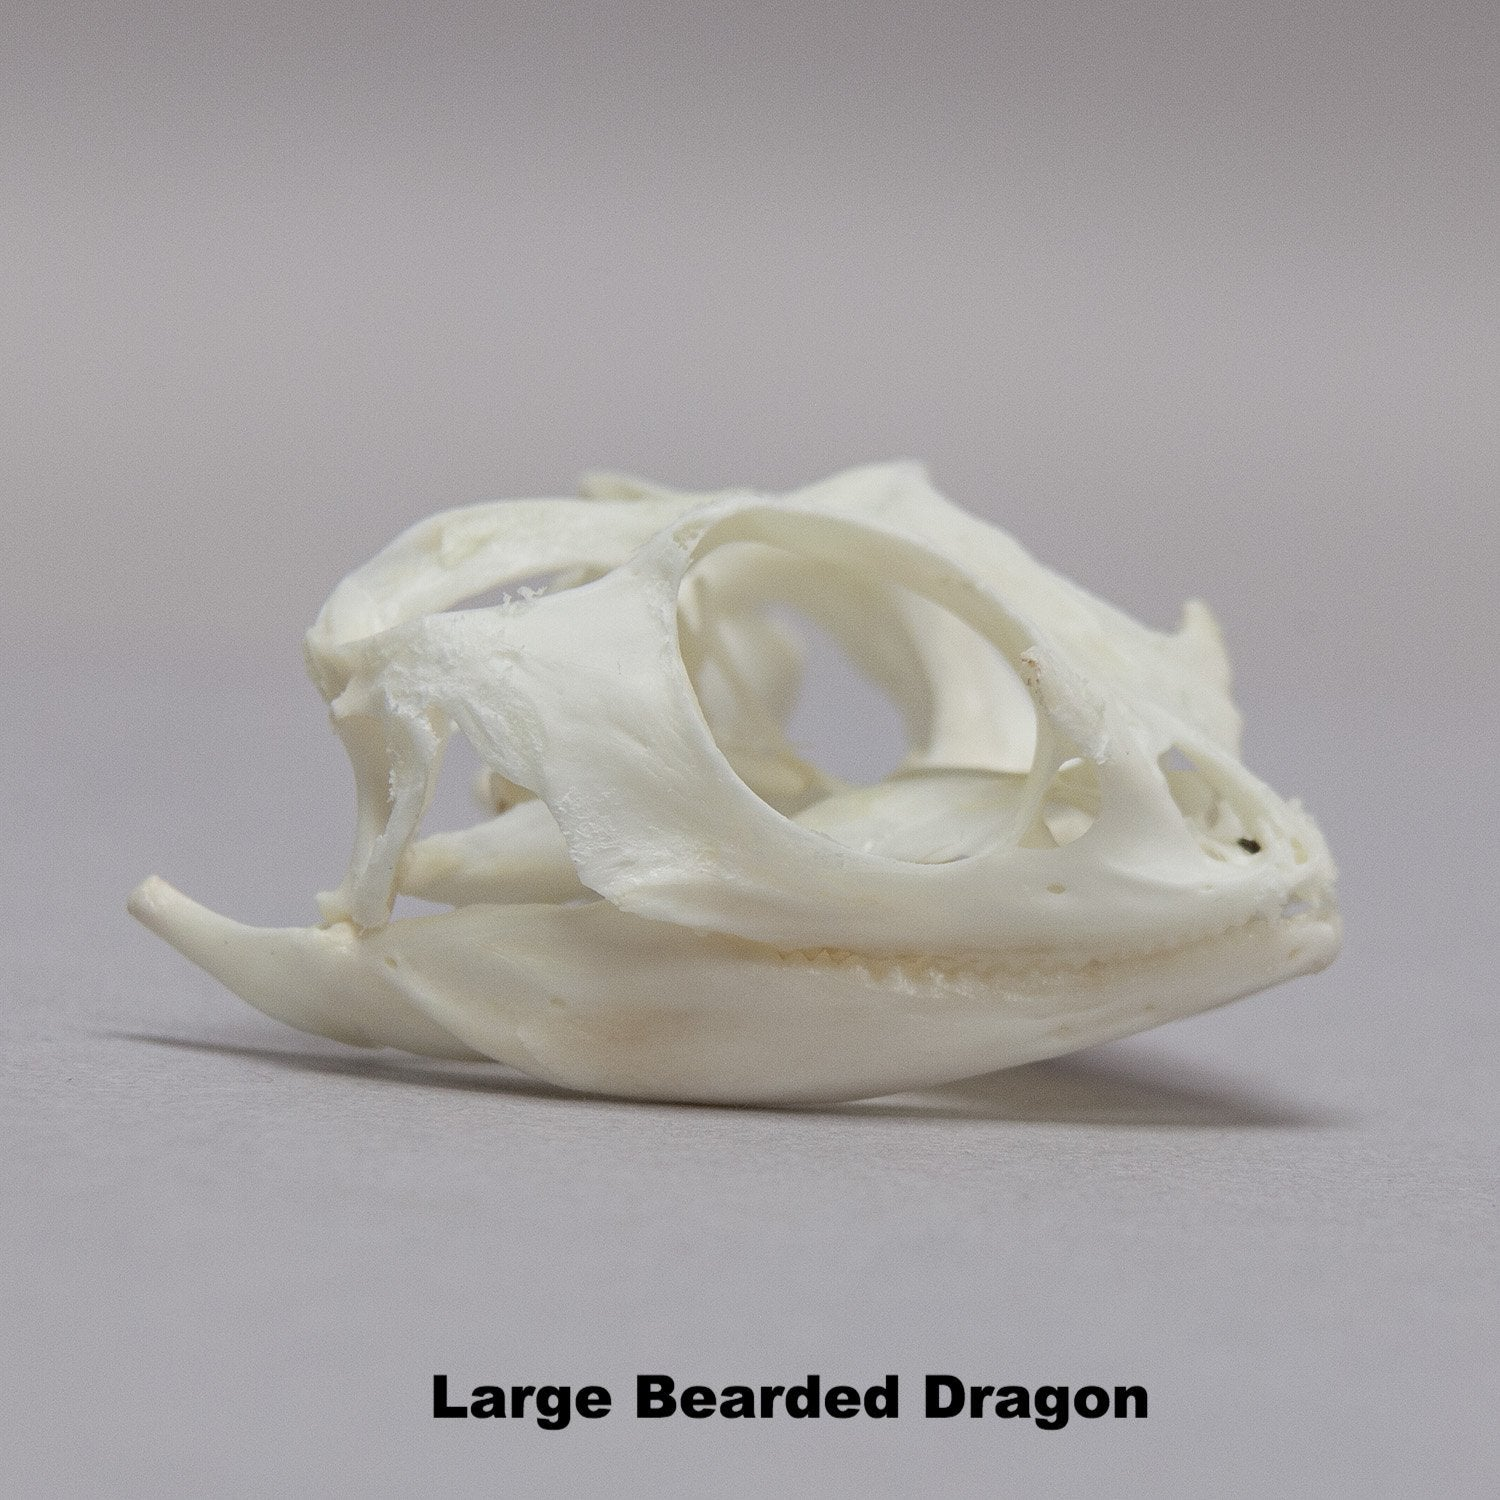 Real Bearded Dragon Skull For Sale Skulls Unlimited International Inc Depending on the stage and species of the dragon, the skull may vary in size and shape. real bearded dragon skull